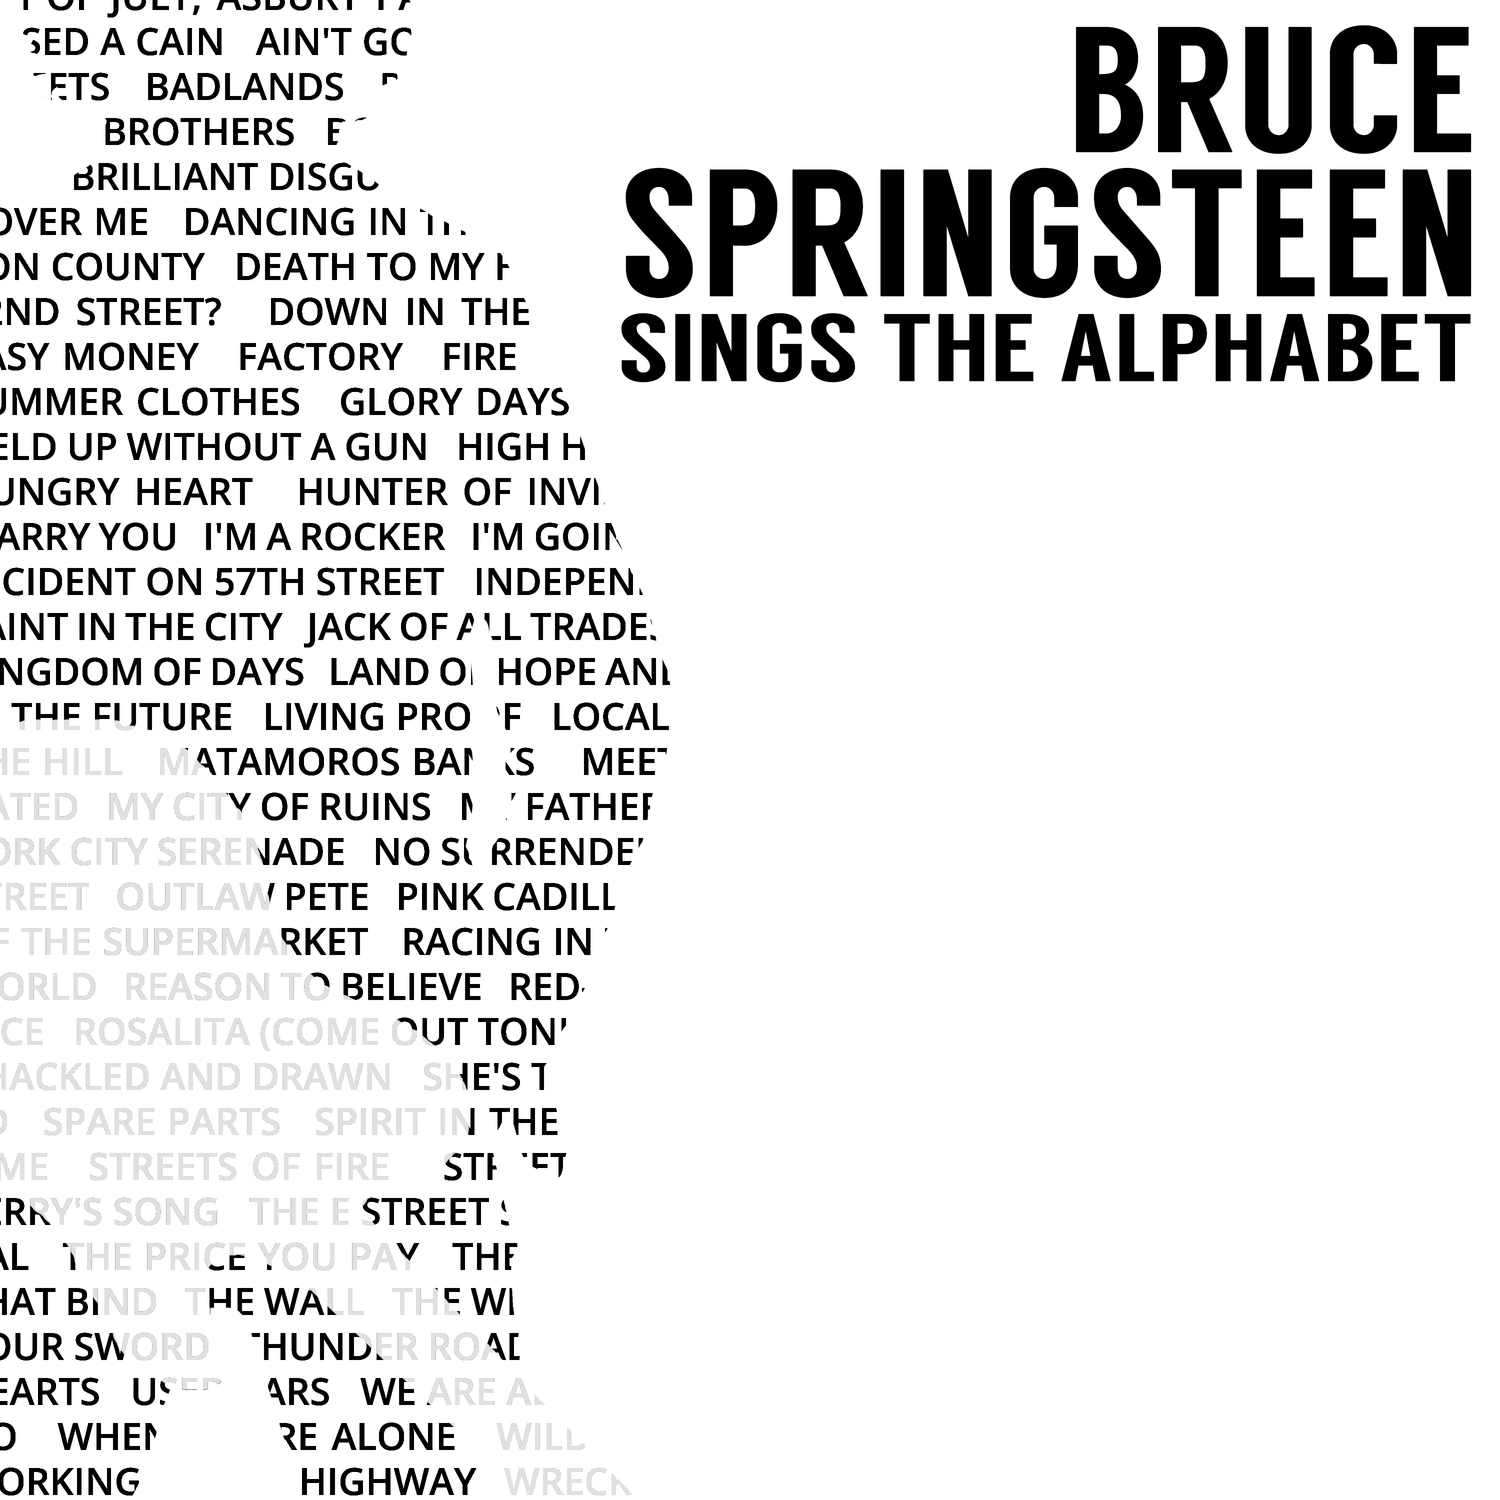 Bruce Springsteen Sings the Alphabet